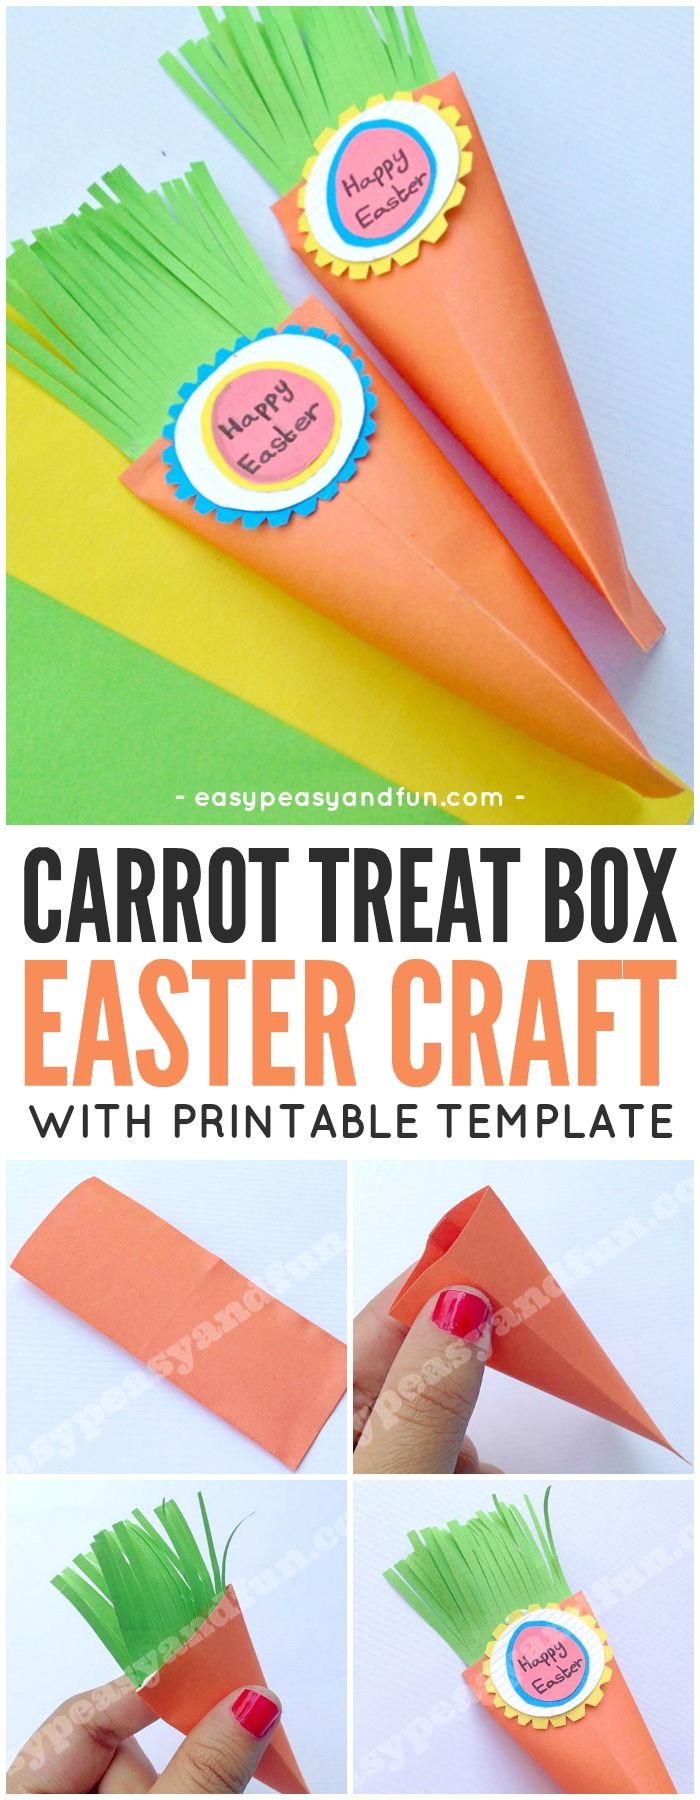 Easter Carrot Treat Box Craft for Kids with Printable Template. Fun Easter Paper Craft Idea for Kids.